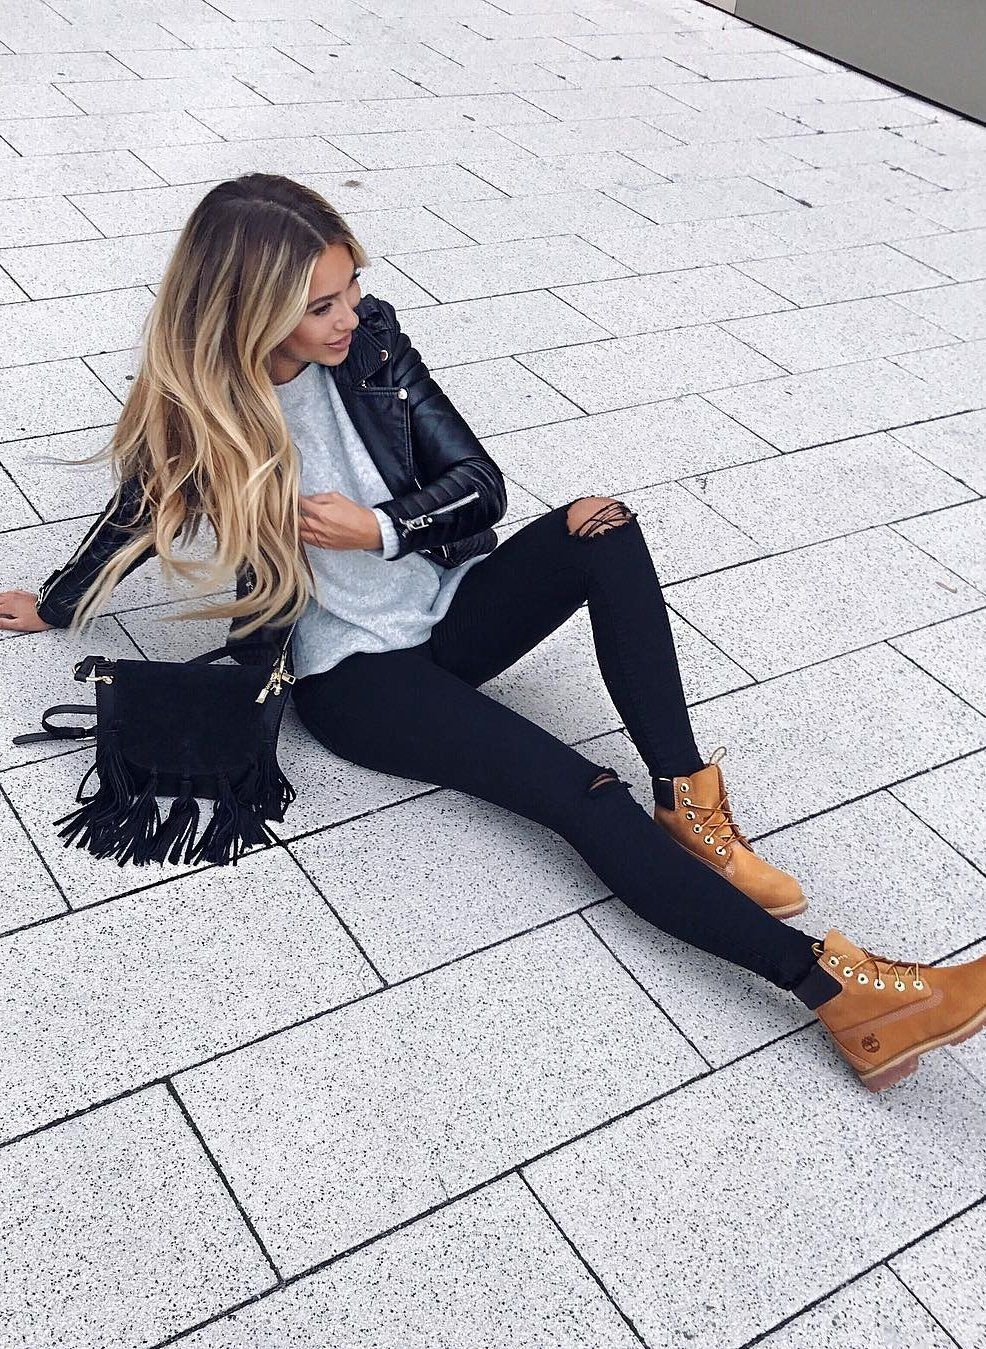 fall  fashion · Leather Jacket + Destroyed Jeans + Shoulder Bag Timberland  Boots Outfit 2c33bc82eaa7